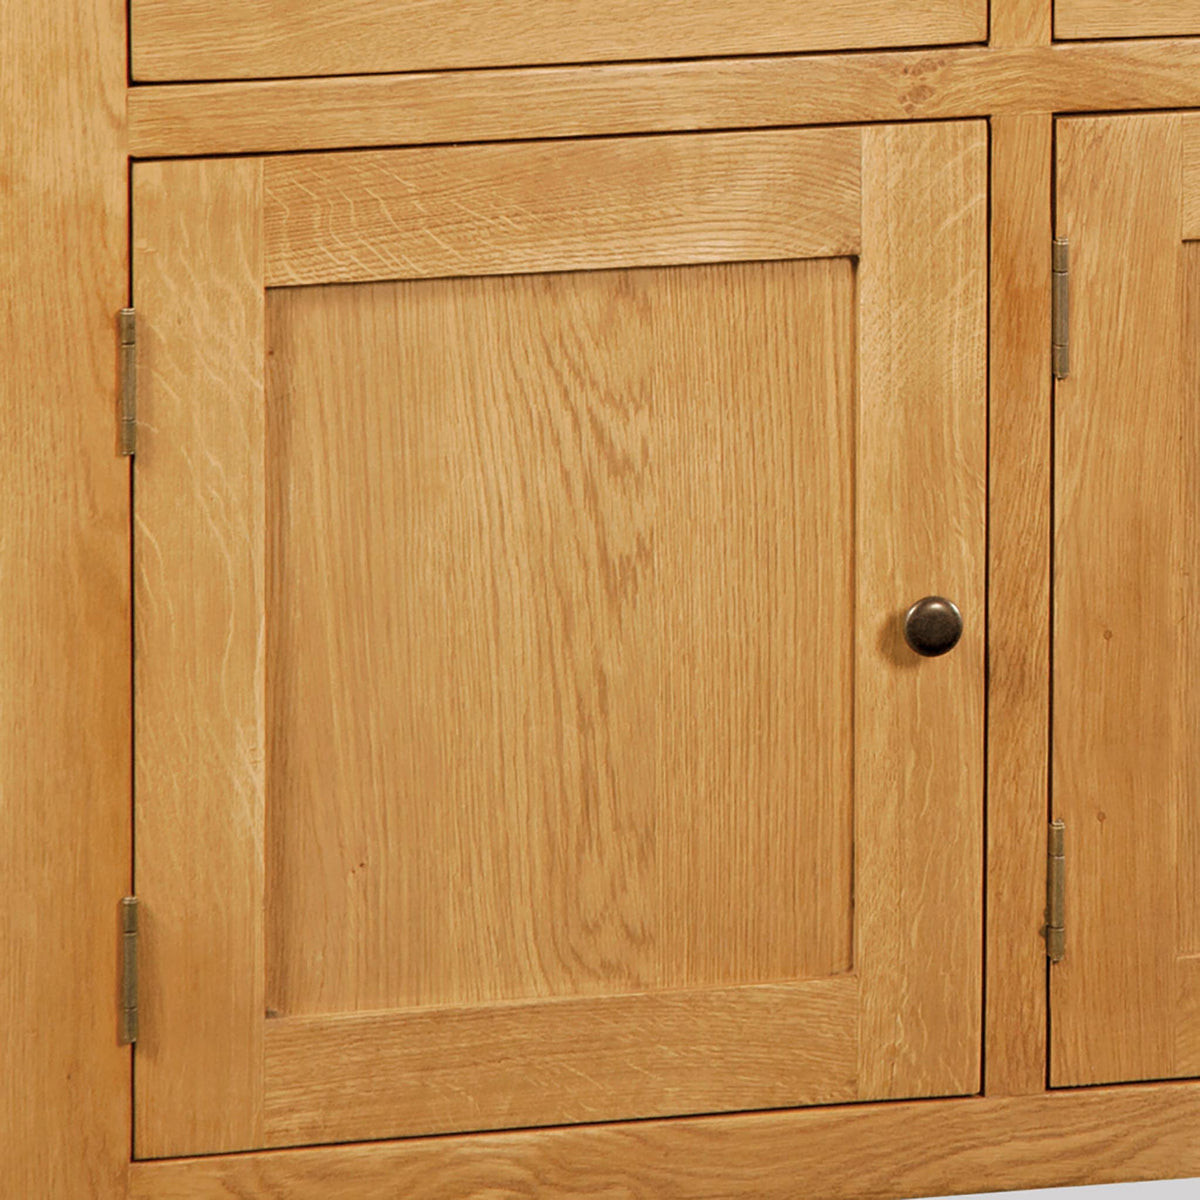 Zelah Oak Large Sideboard - Close Up of Cupboard Door